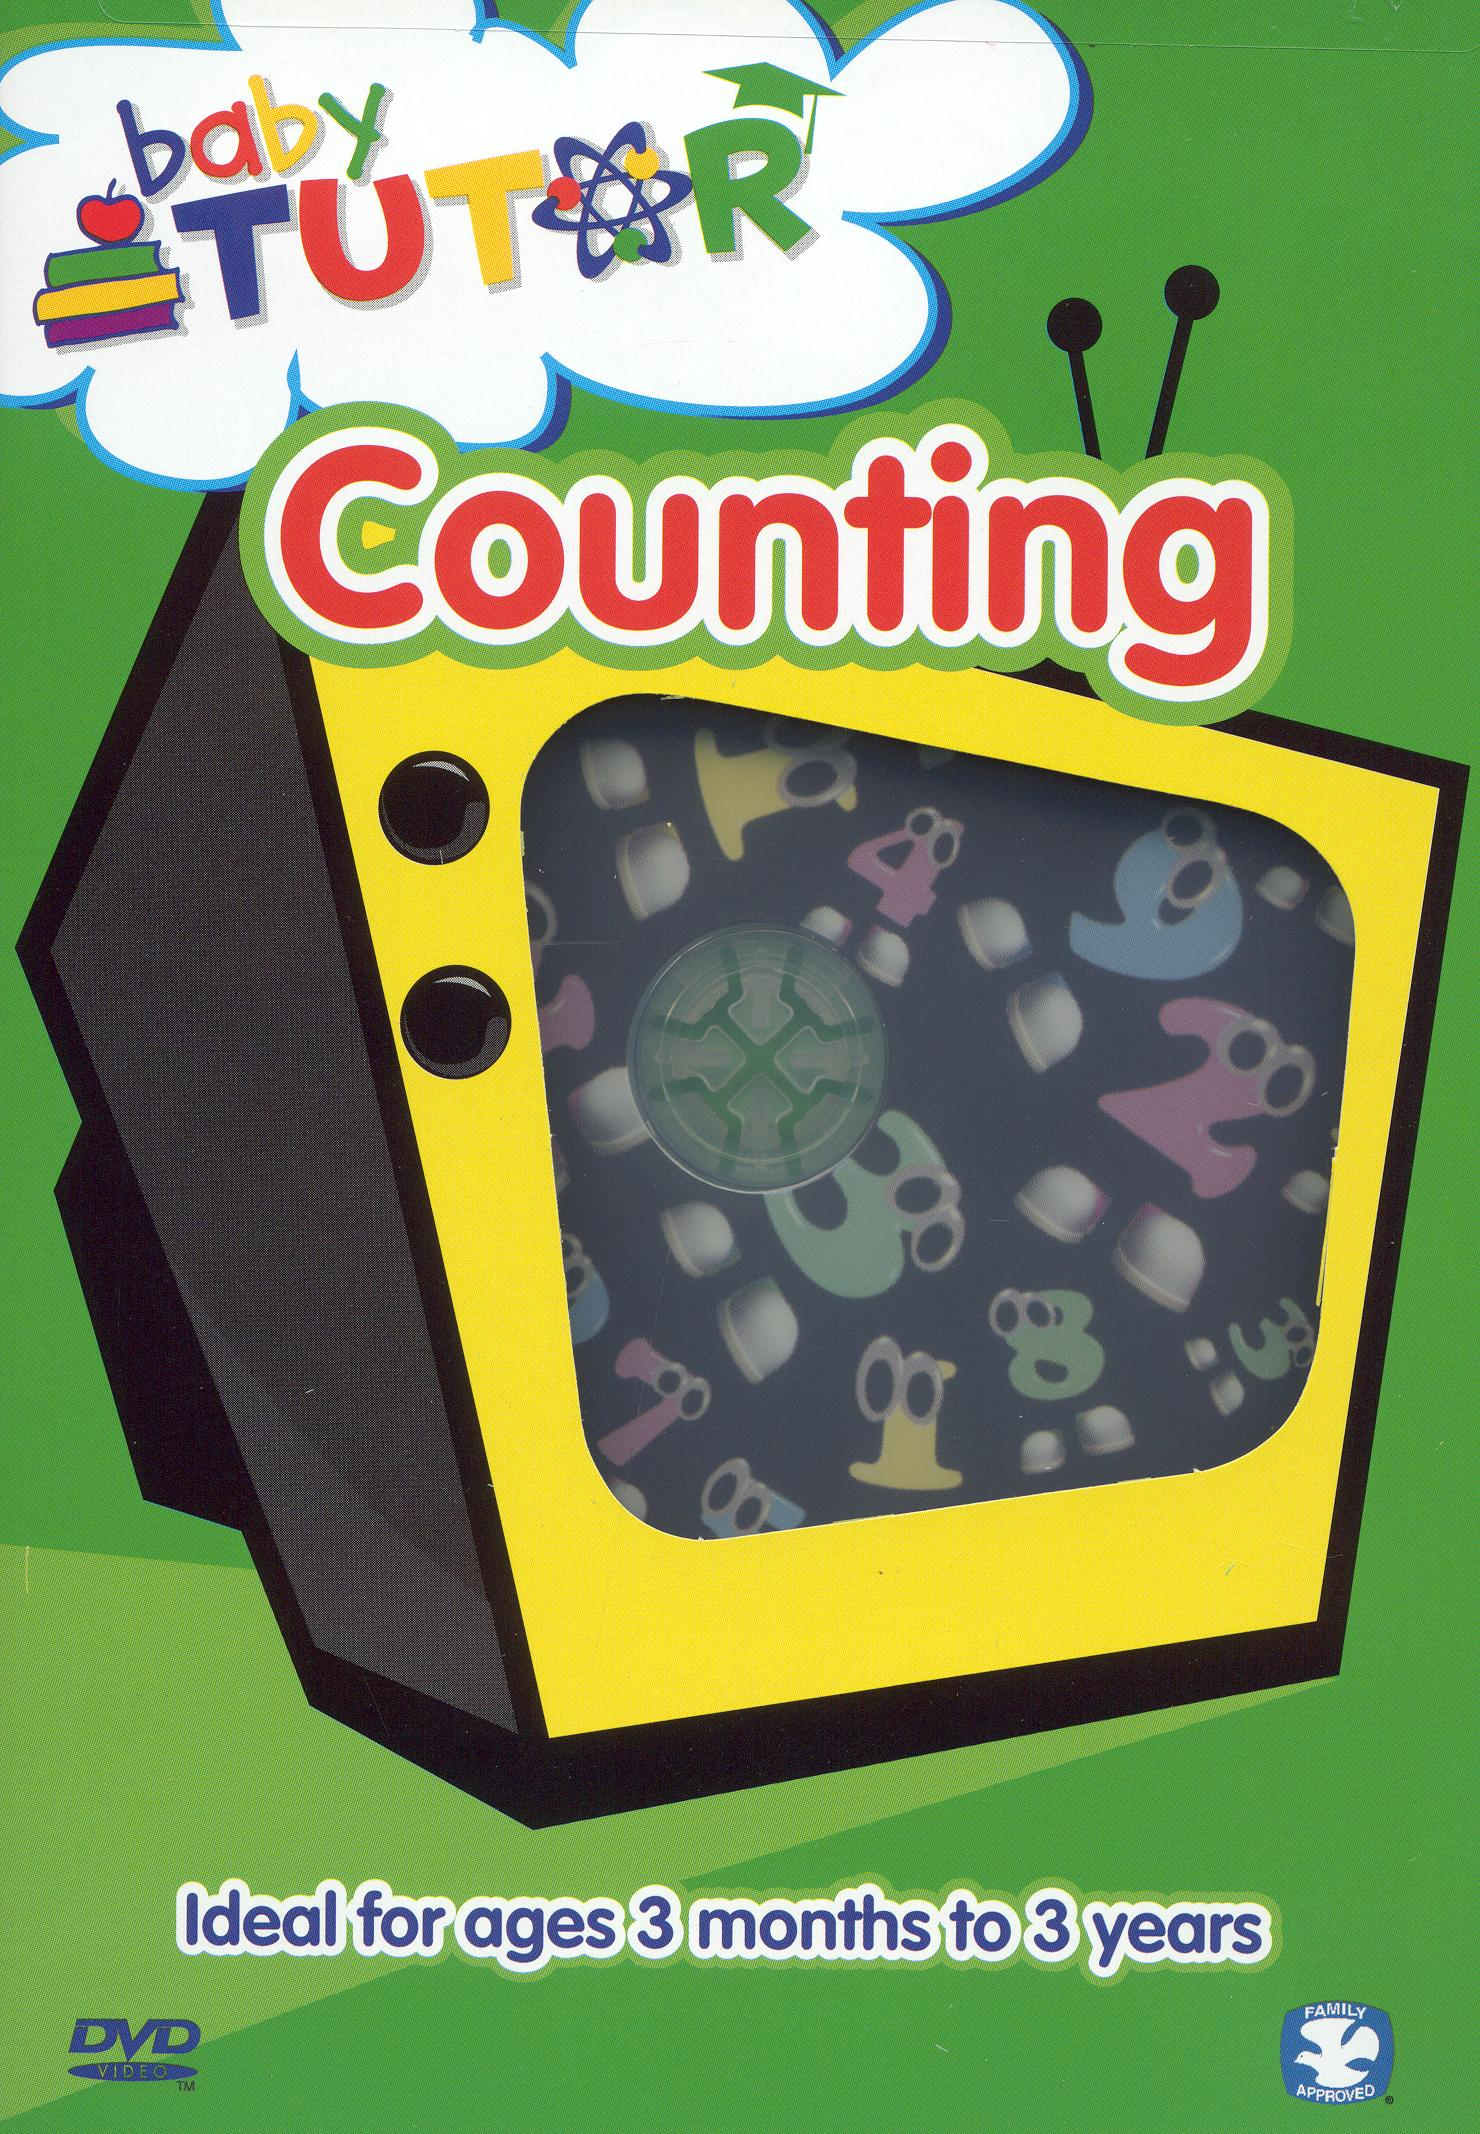 Baby Tutor: Counting